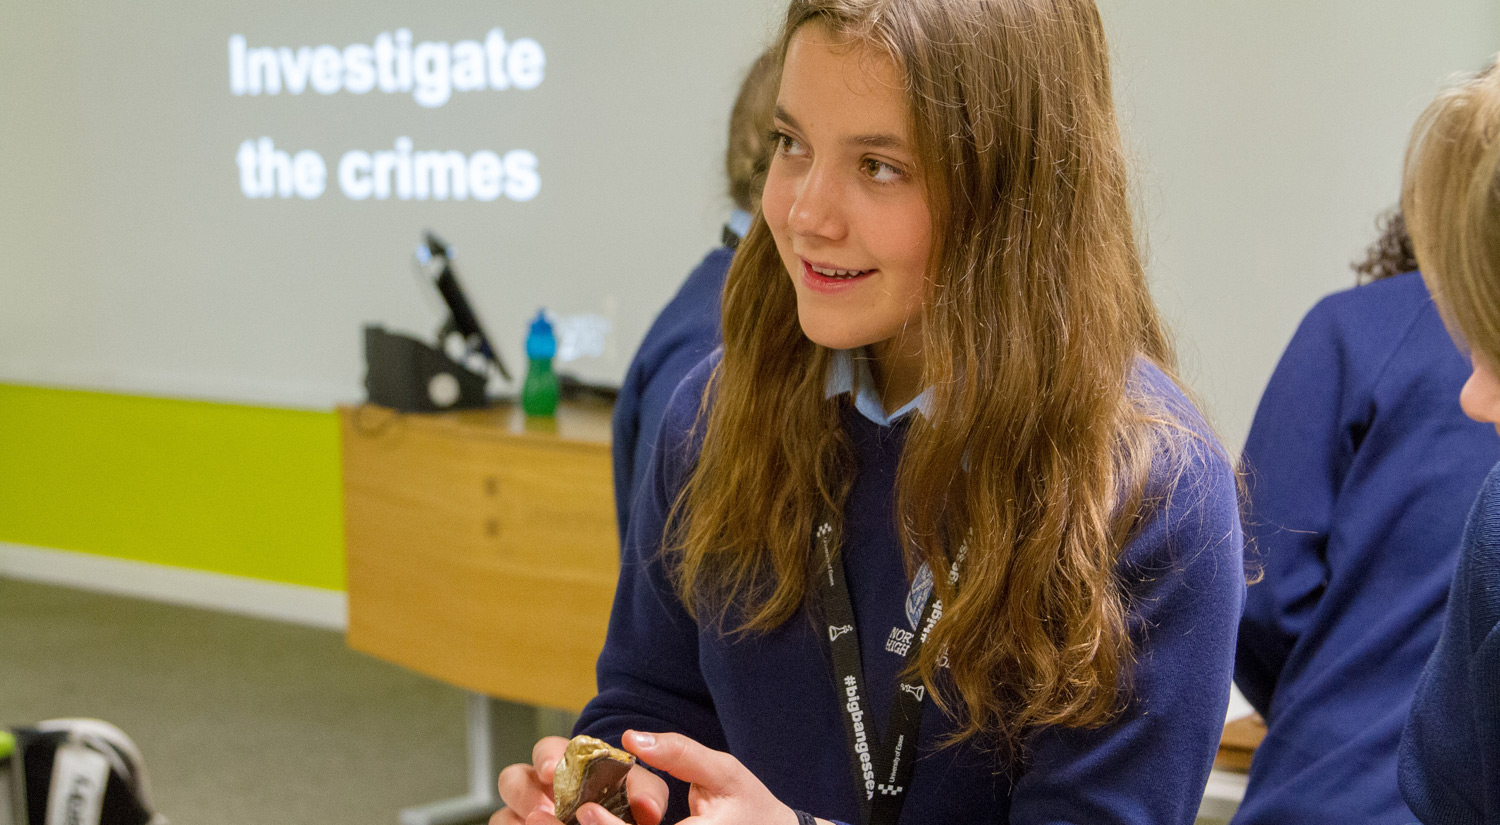 A Northgate High School student enjoys a theft investigation workshop with The Detective Project